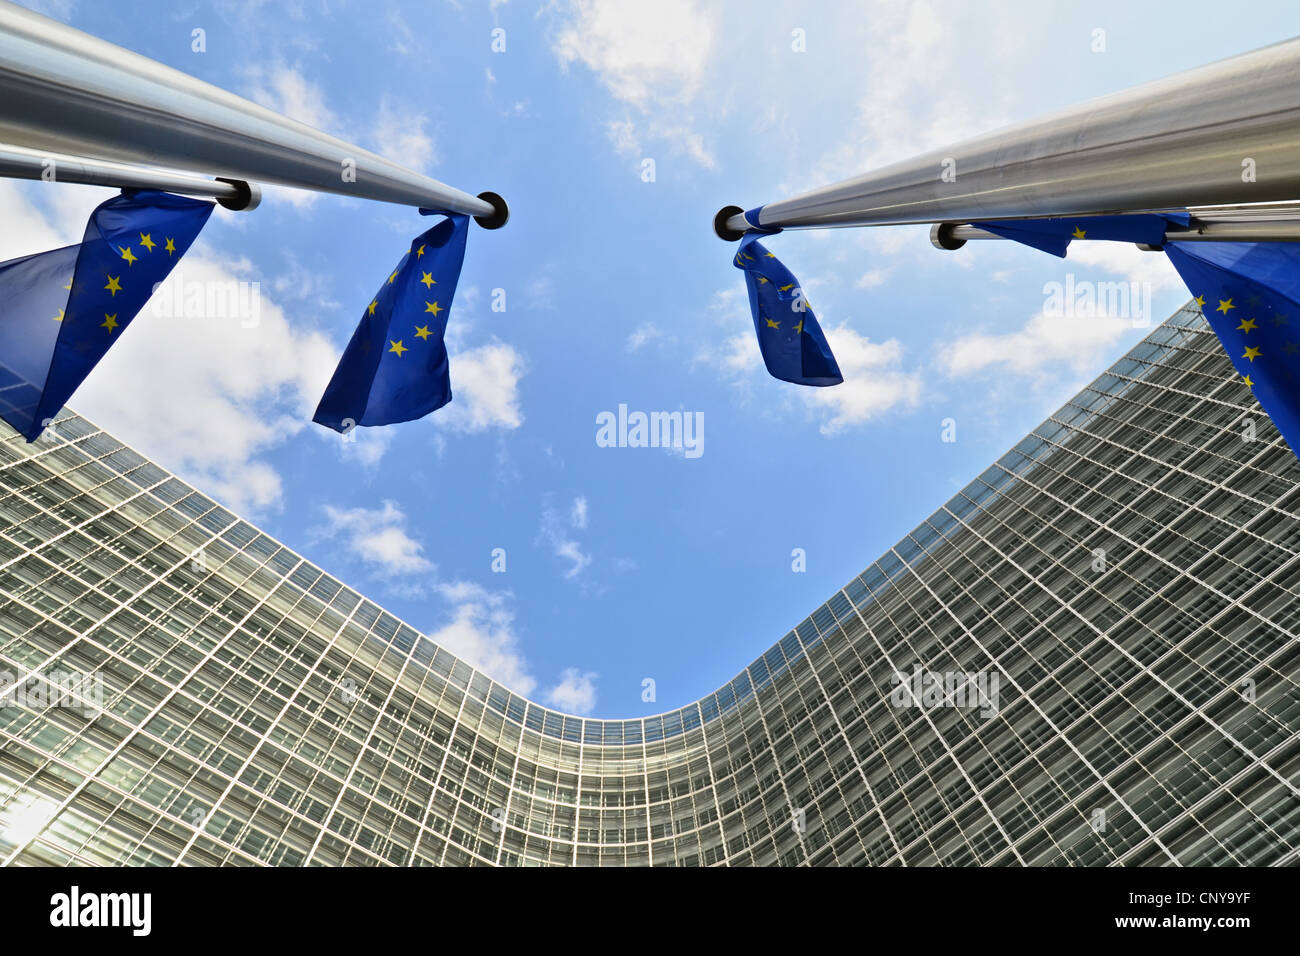 Flag poles and European Union flags flying outside the European Commission Berlaymont headquarters in Brussels, - Stock Image